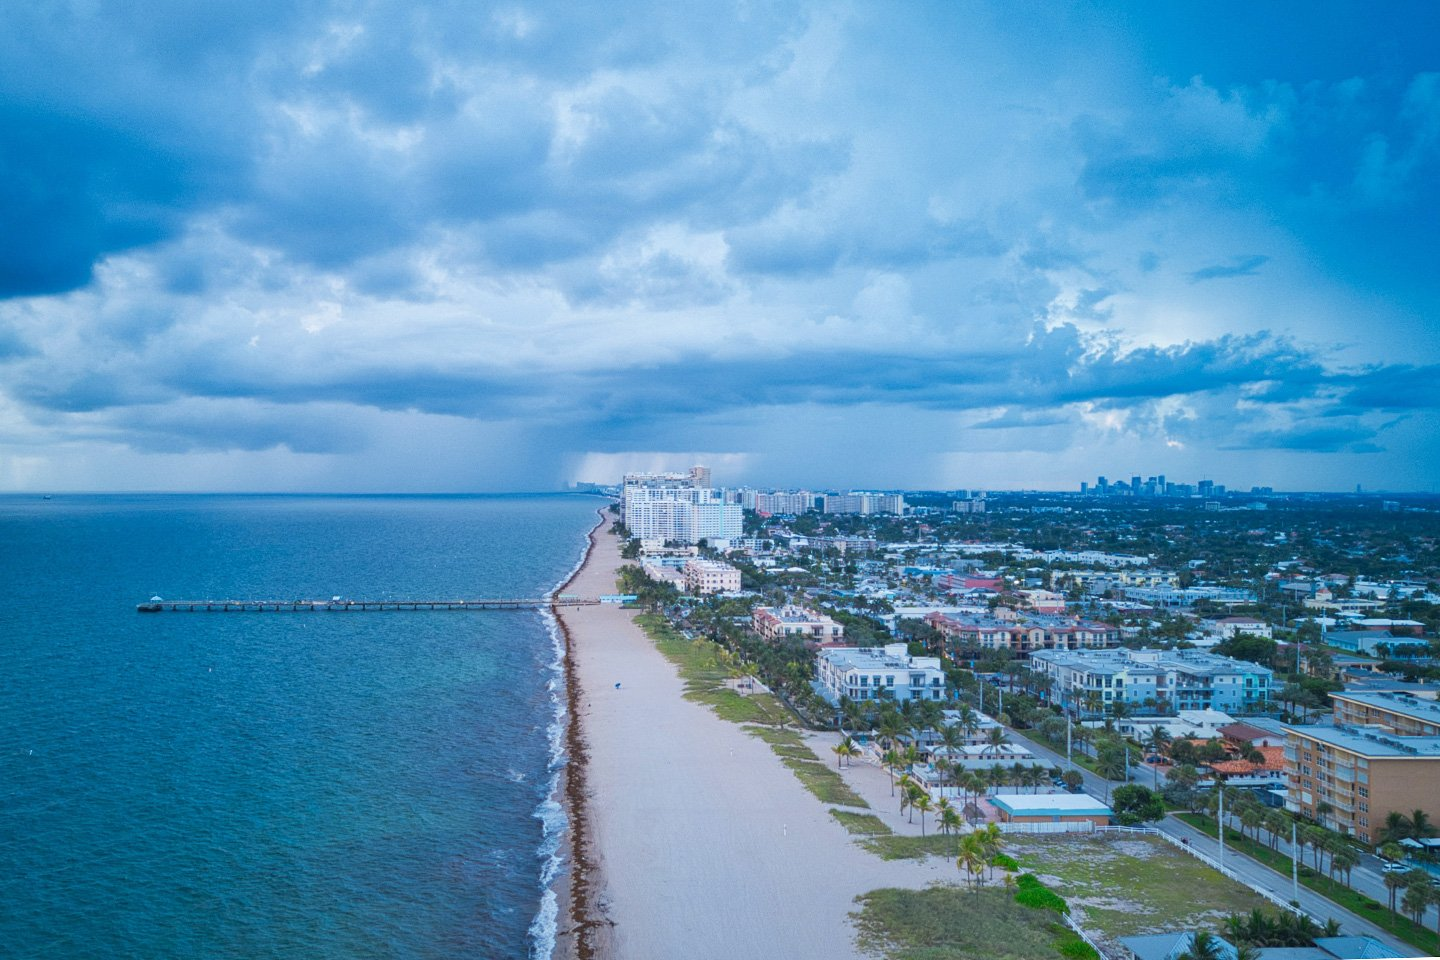 Lauderdale by the Sea drone photo on a cloudy day